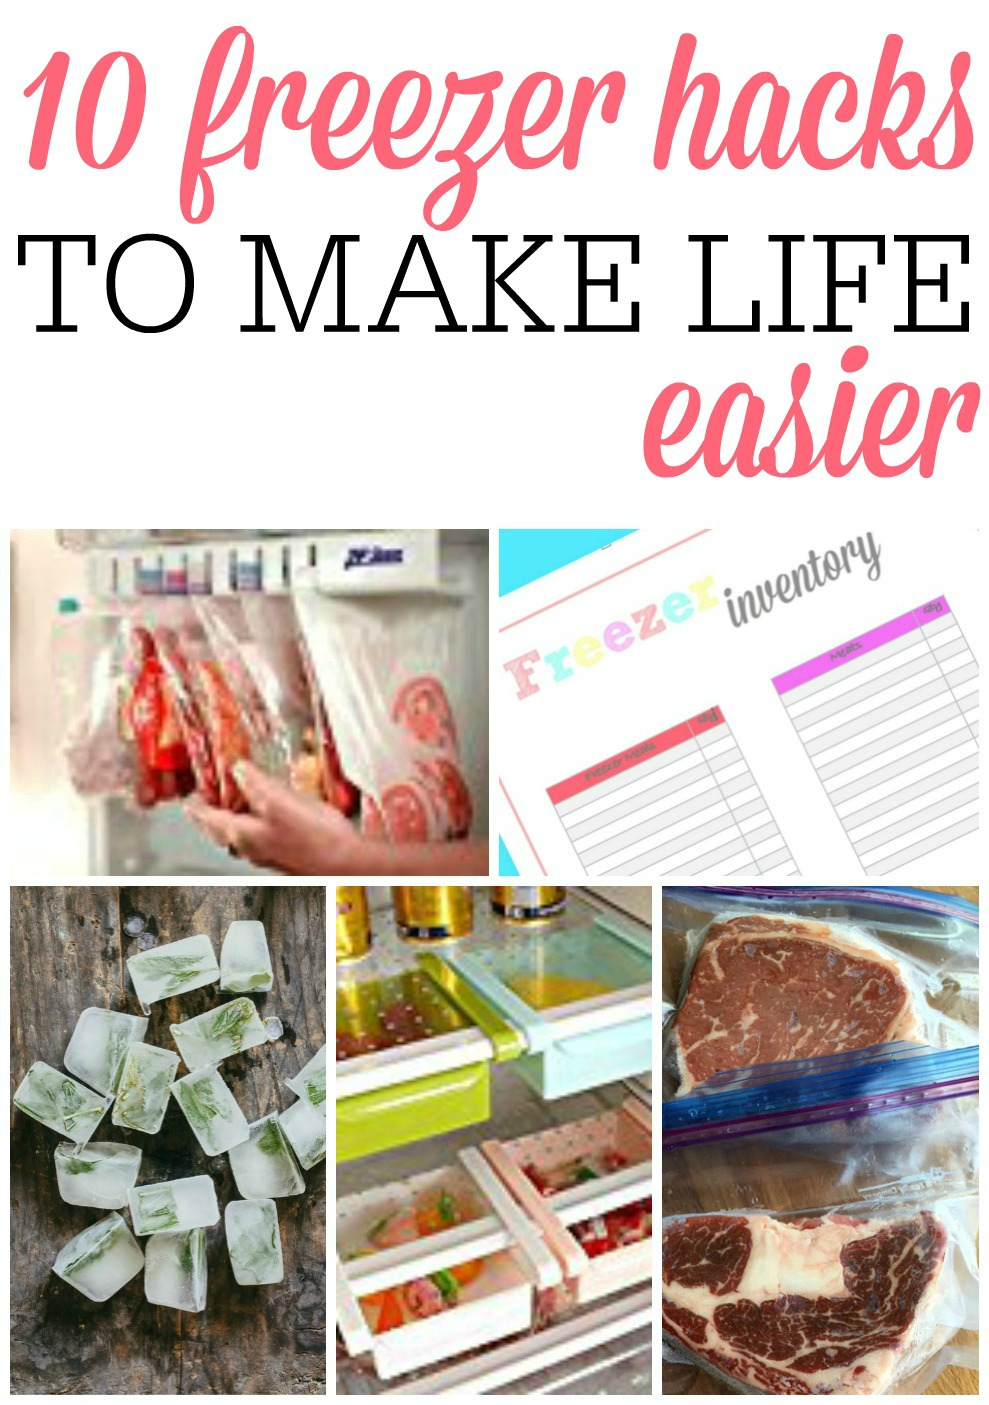 Freezer hacks to make life easier frugally blonde - Five easy cleaning tips get some time for yourself ...